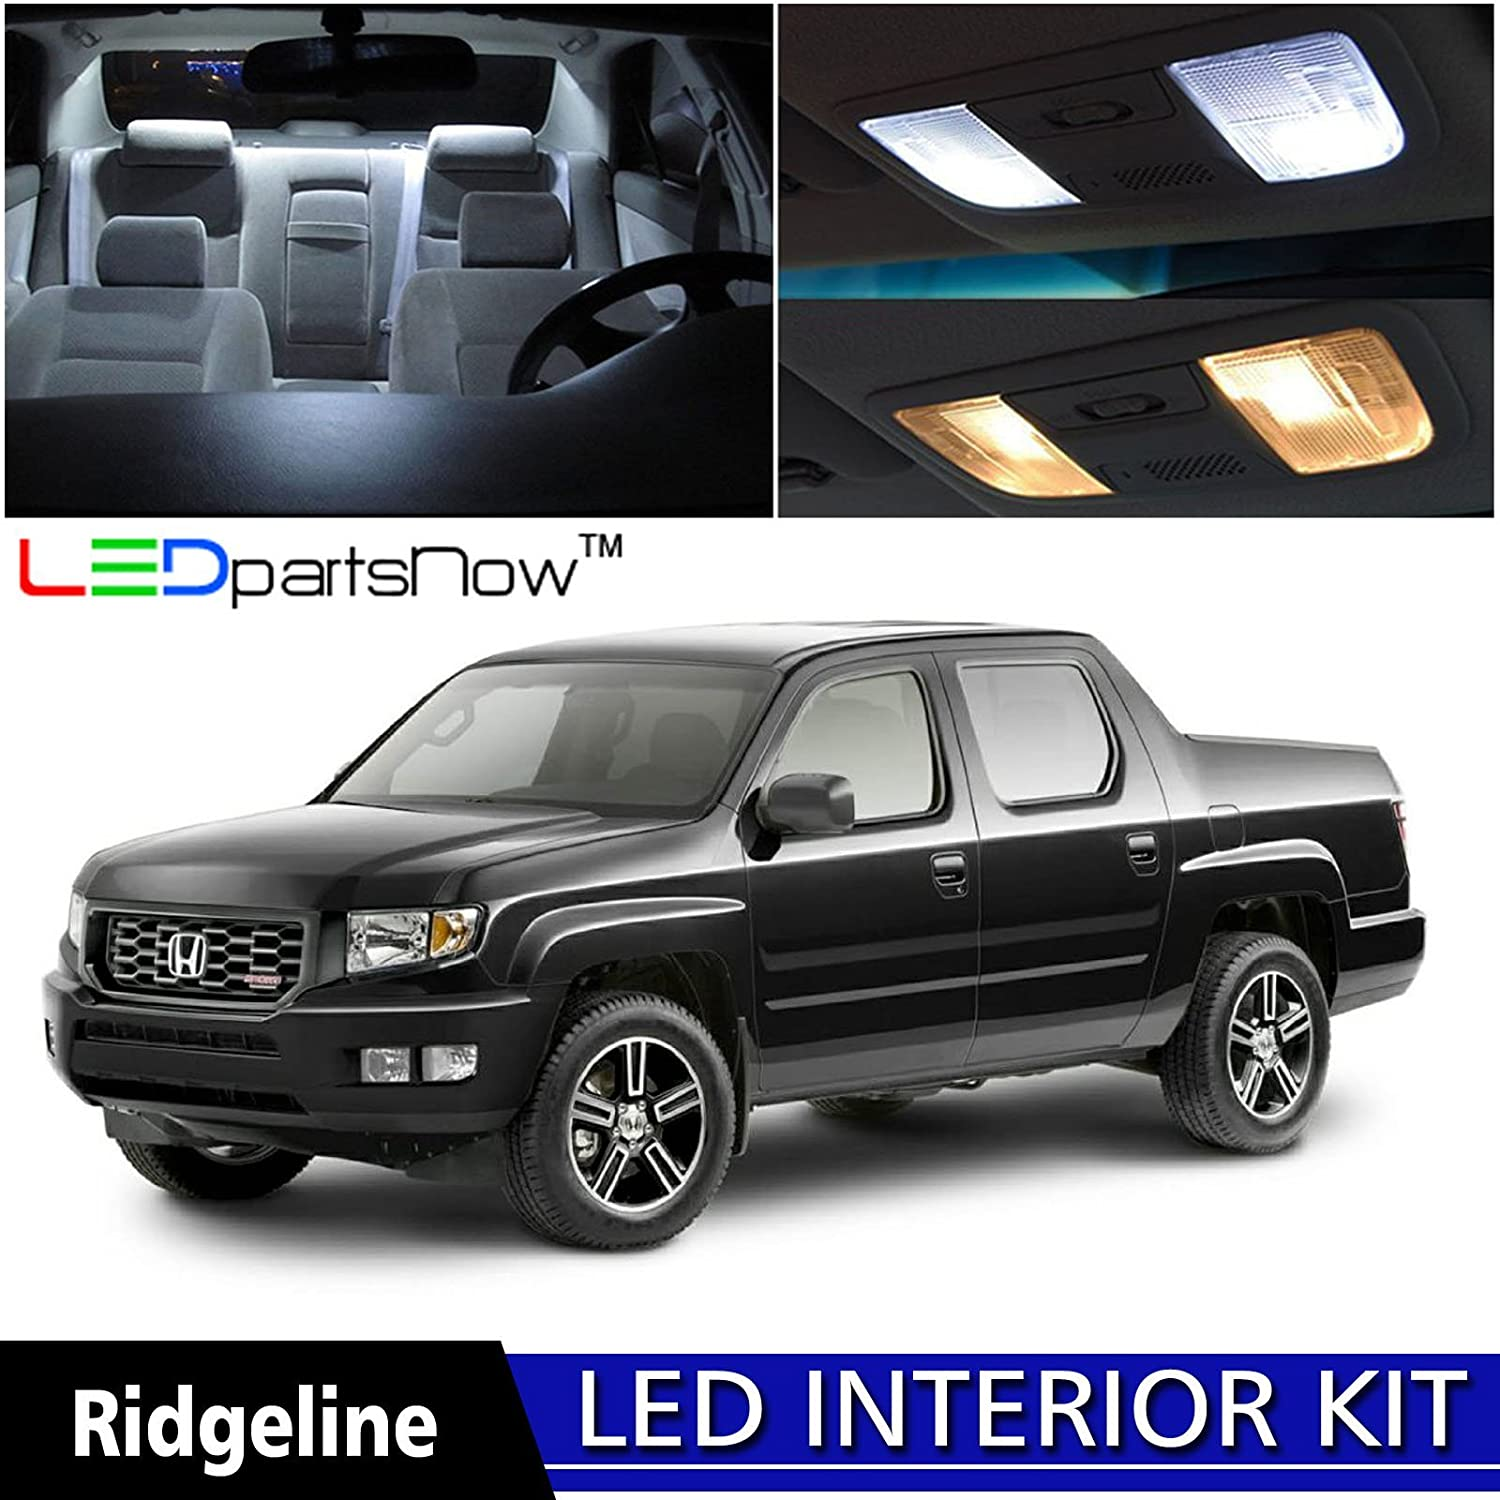 81kAR%2B389mL._SL1500_ amazon com ledpartsnow 2006 2014 honda ridgeline led interior 2006 Honda Ridgeline Power Steering Pump at edmiracle.co